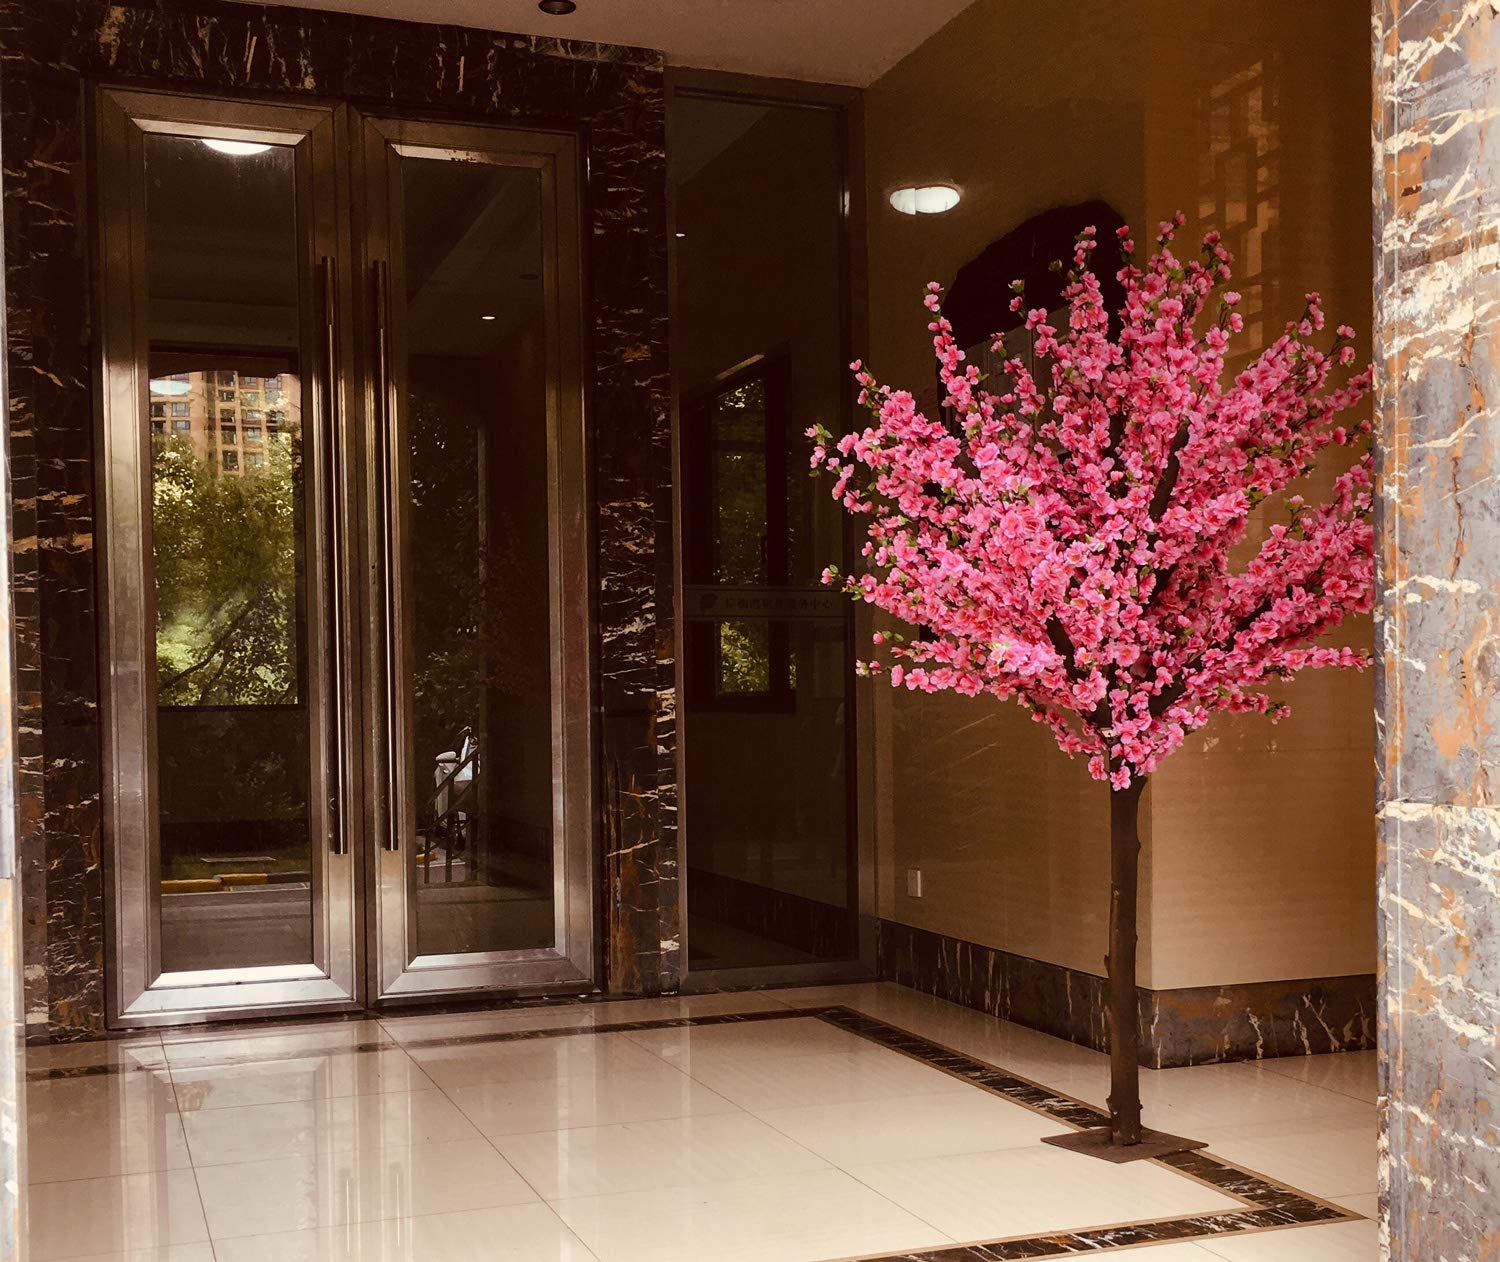 j-beauty Artificial Peach Blossom Trees Artificial Cherry Blossom Tree, Silk Flower (6 feet Tall)